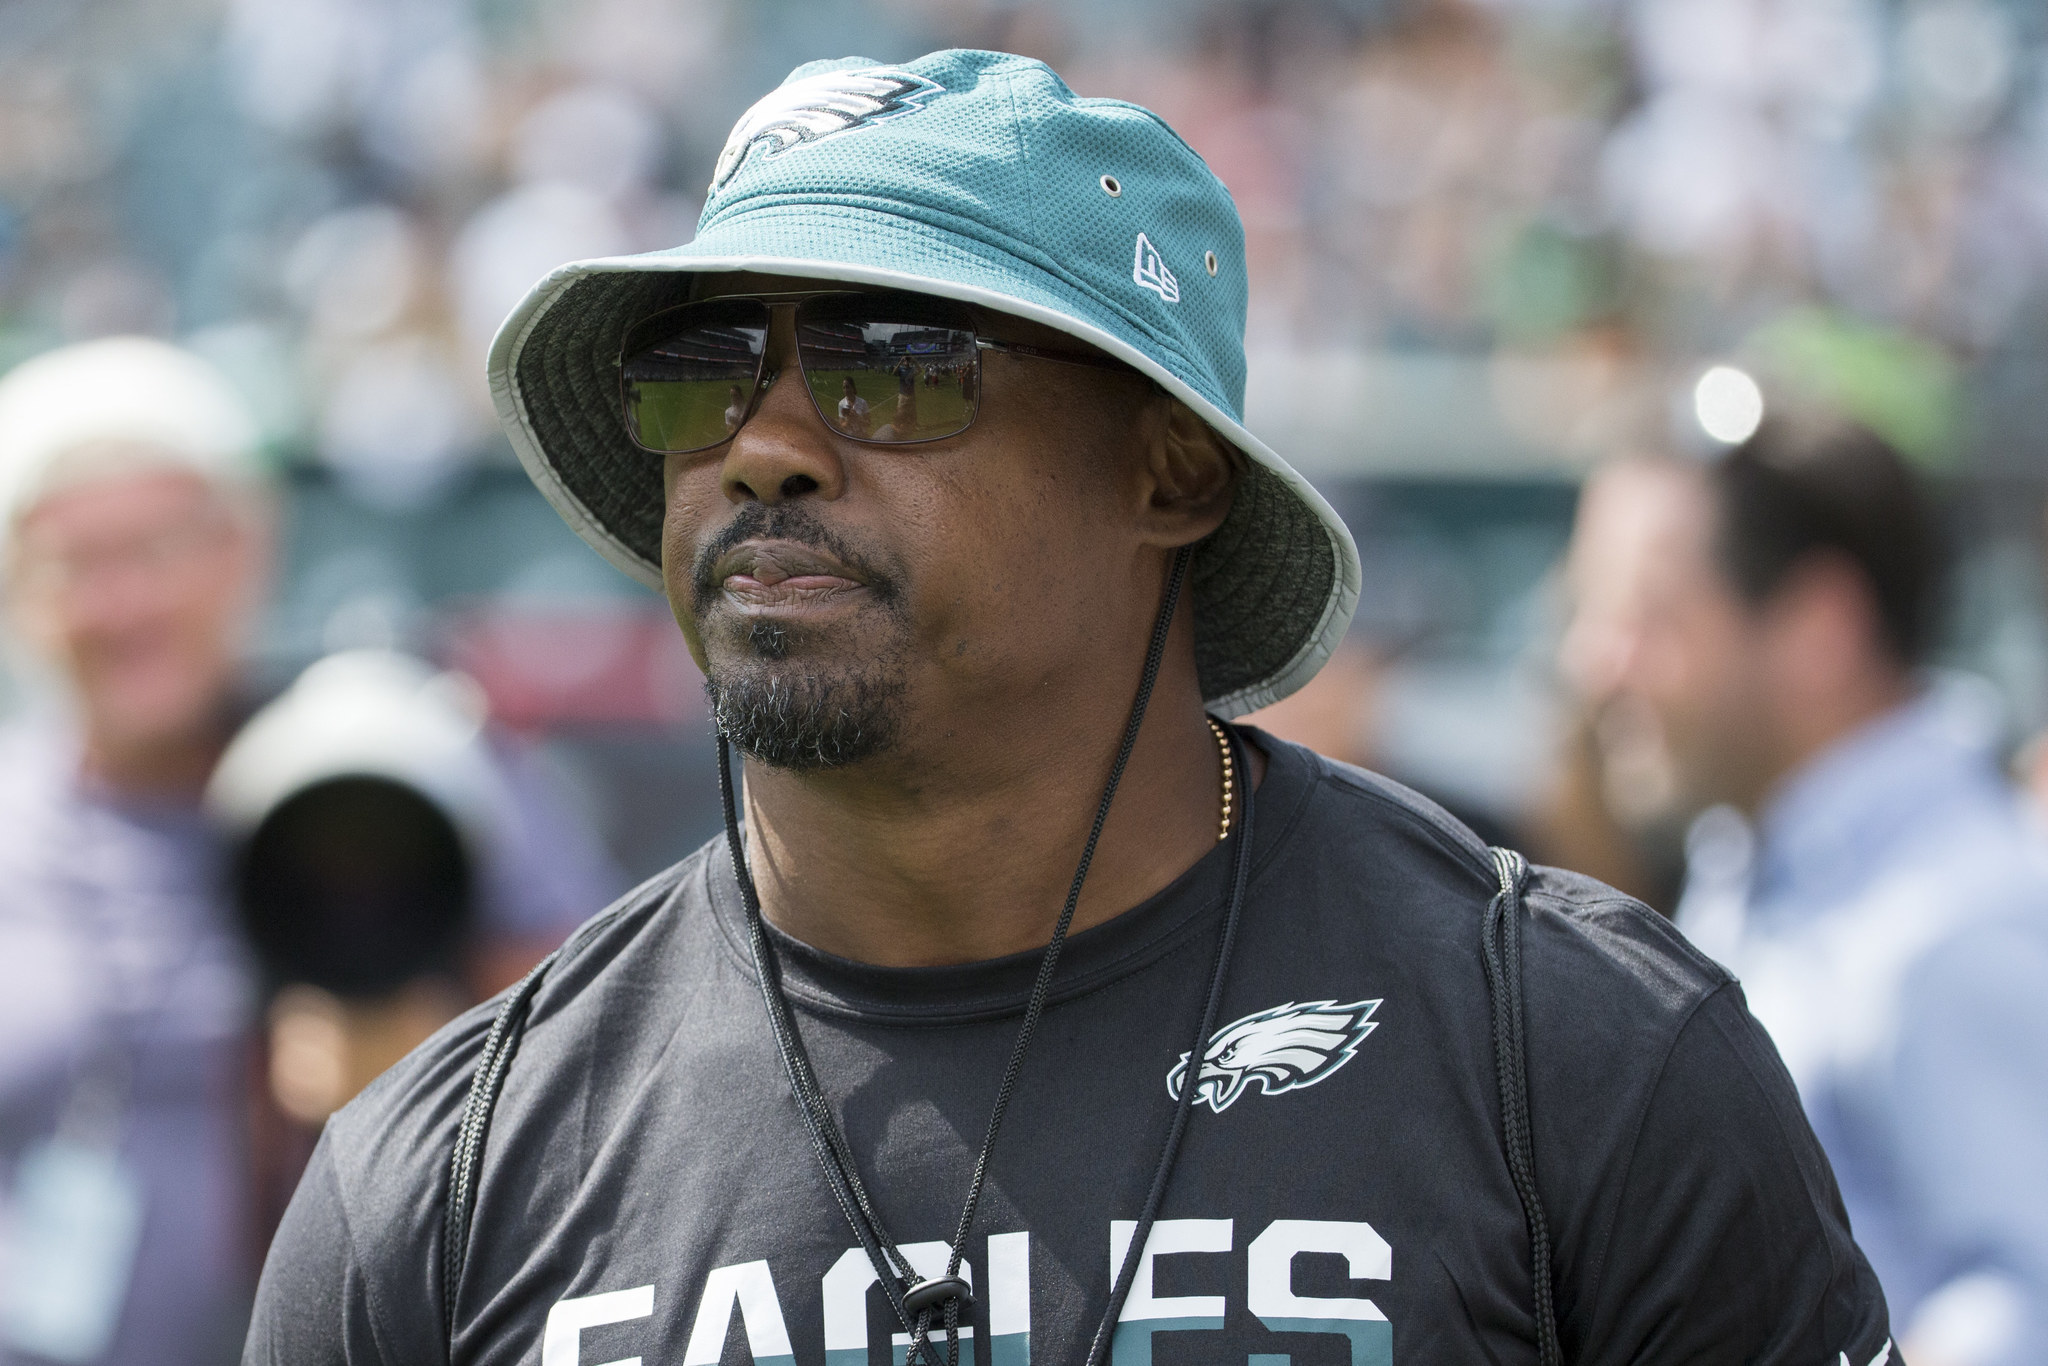 Mc-why-eagles-great-brian-dawkins-must-wait-to-get-hall-of-fame-honor-he-deserves-20170206